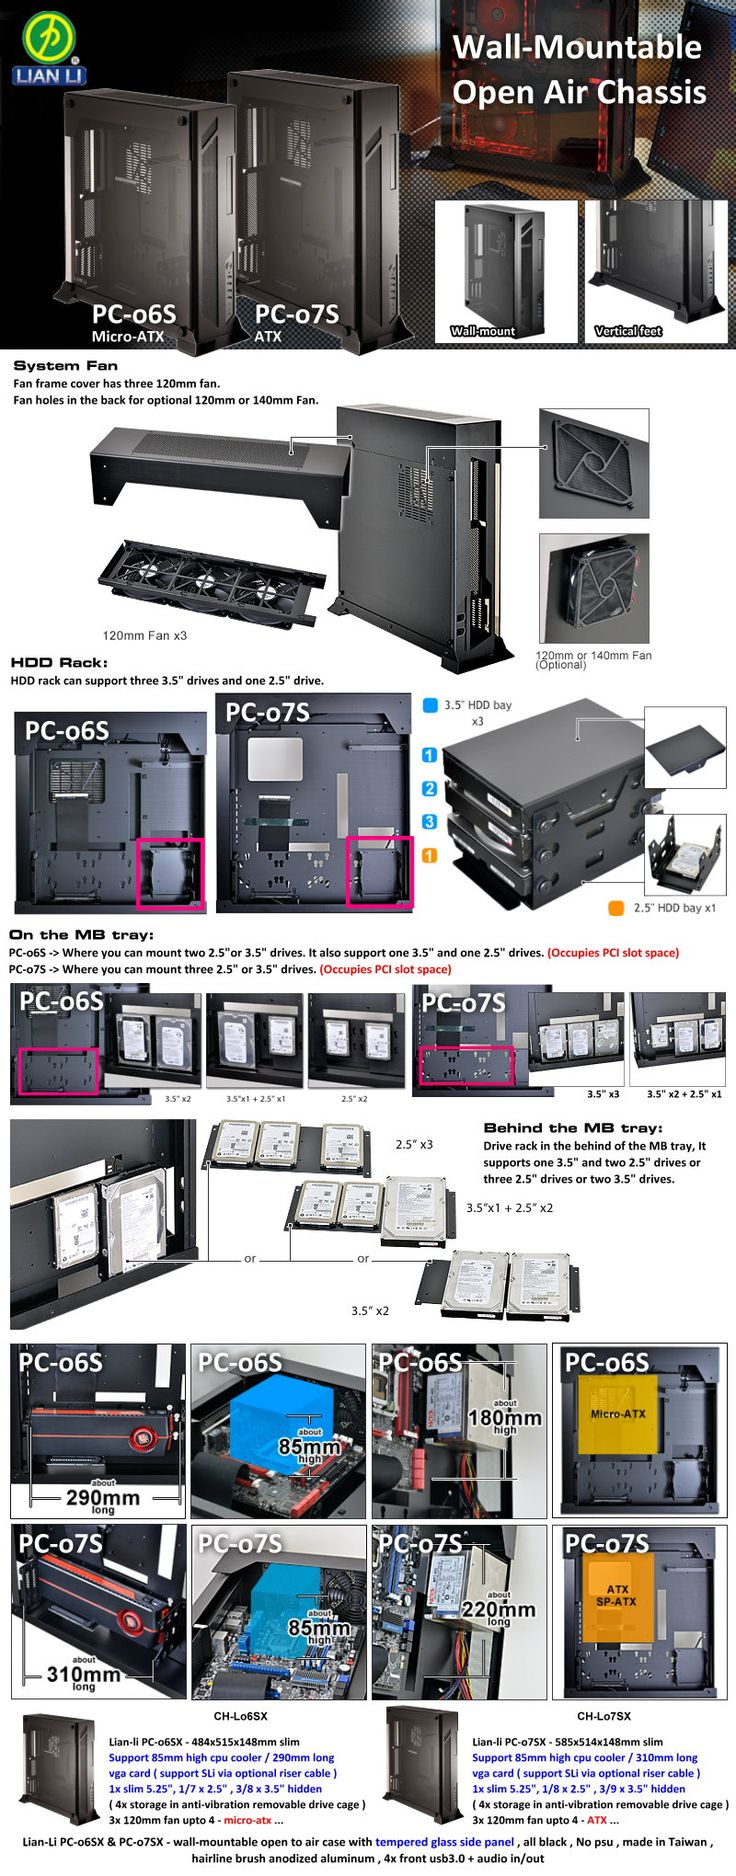 Wall-Mountable Open Air Chassis